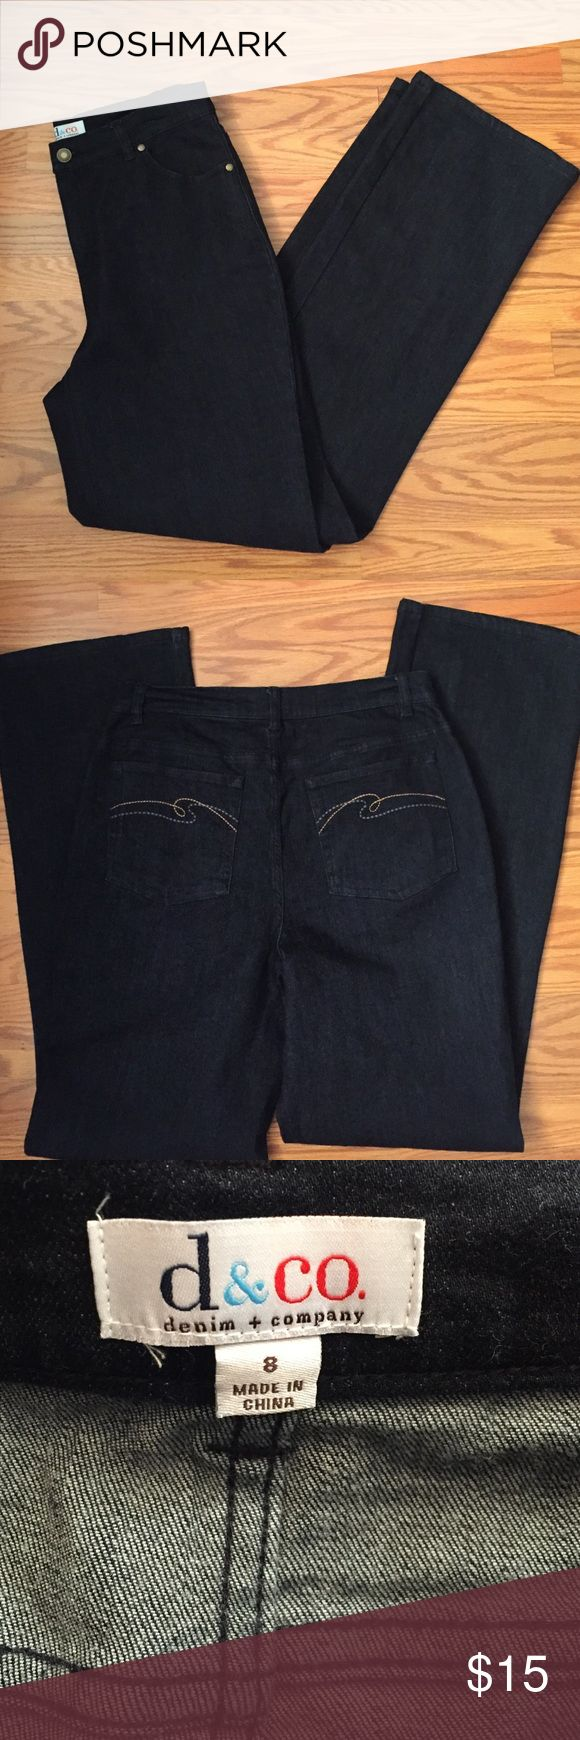 """Denim + company jeans D&co jeans, NWOT inseam 32"""" from qvc home shopping network denim + company Jeans Boot Cut"""